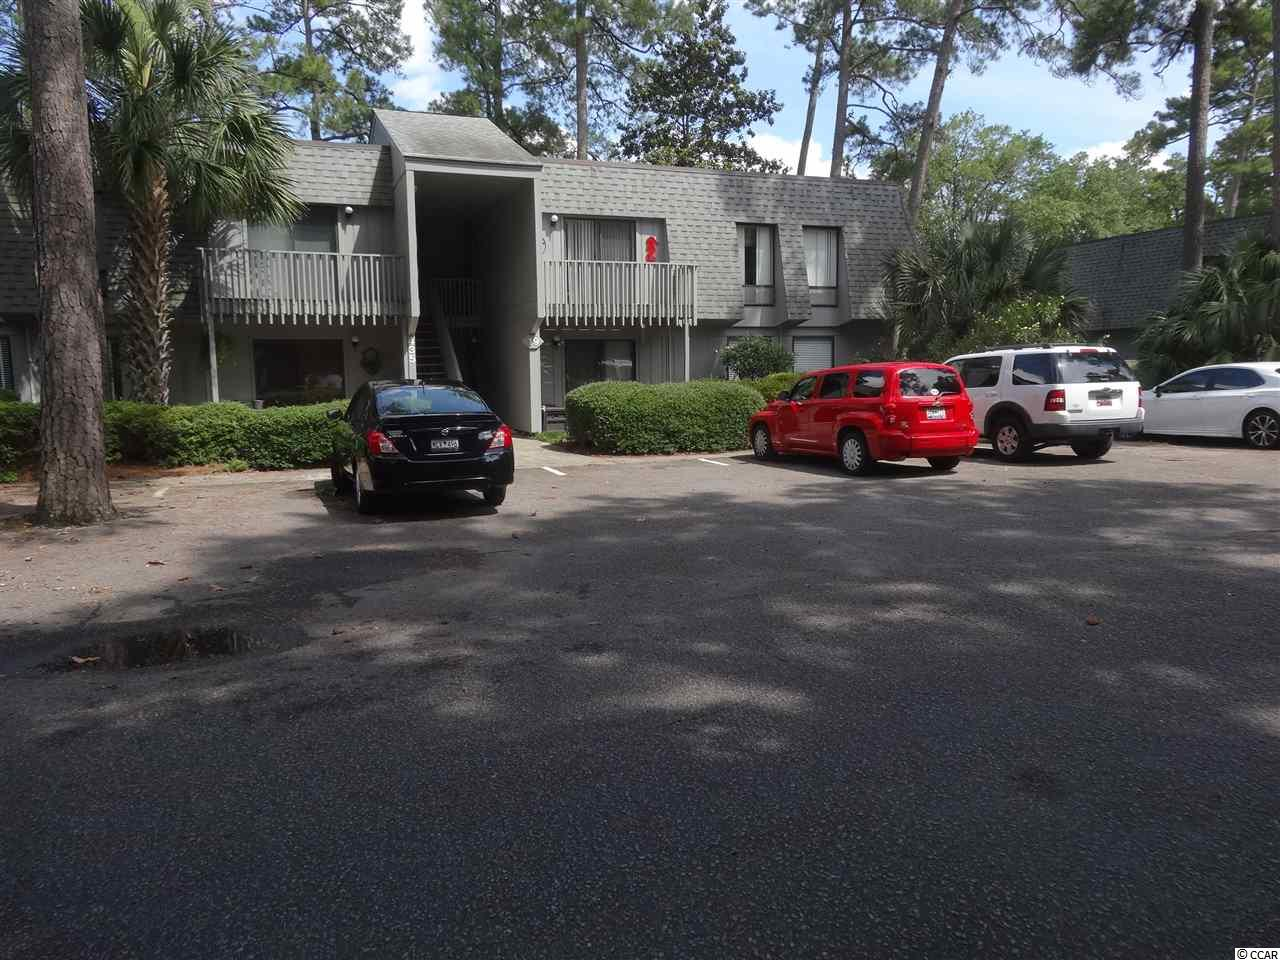 Great investment deal in Salt Marsh Cove for a rental property, personal home, or vacation home.  2 Bedroom 1 1/2 bath unit on second floor with balcony. Many updates including NEW commercial grade laminate flooring throughout, granite countertops, stainless steel appliances, and stackable washer and dryer. Nicely furnished with 2 queen and 1 single bed (along with pull out sofa bed). It is move in ready (includes all linens, dishes, pots/pans, small appliances, etc).  Salt Marsh has a beautiful pool, dock, and boat storage, Basic internet is included in the monthly regime as well as the water bill. This condo is only 5 minutes to Litchfield Beach.